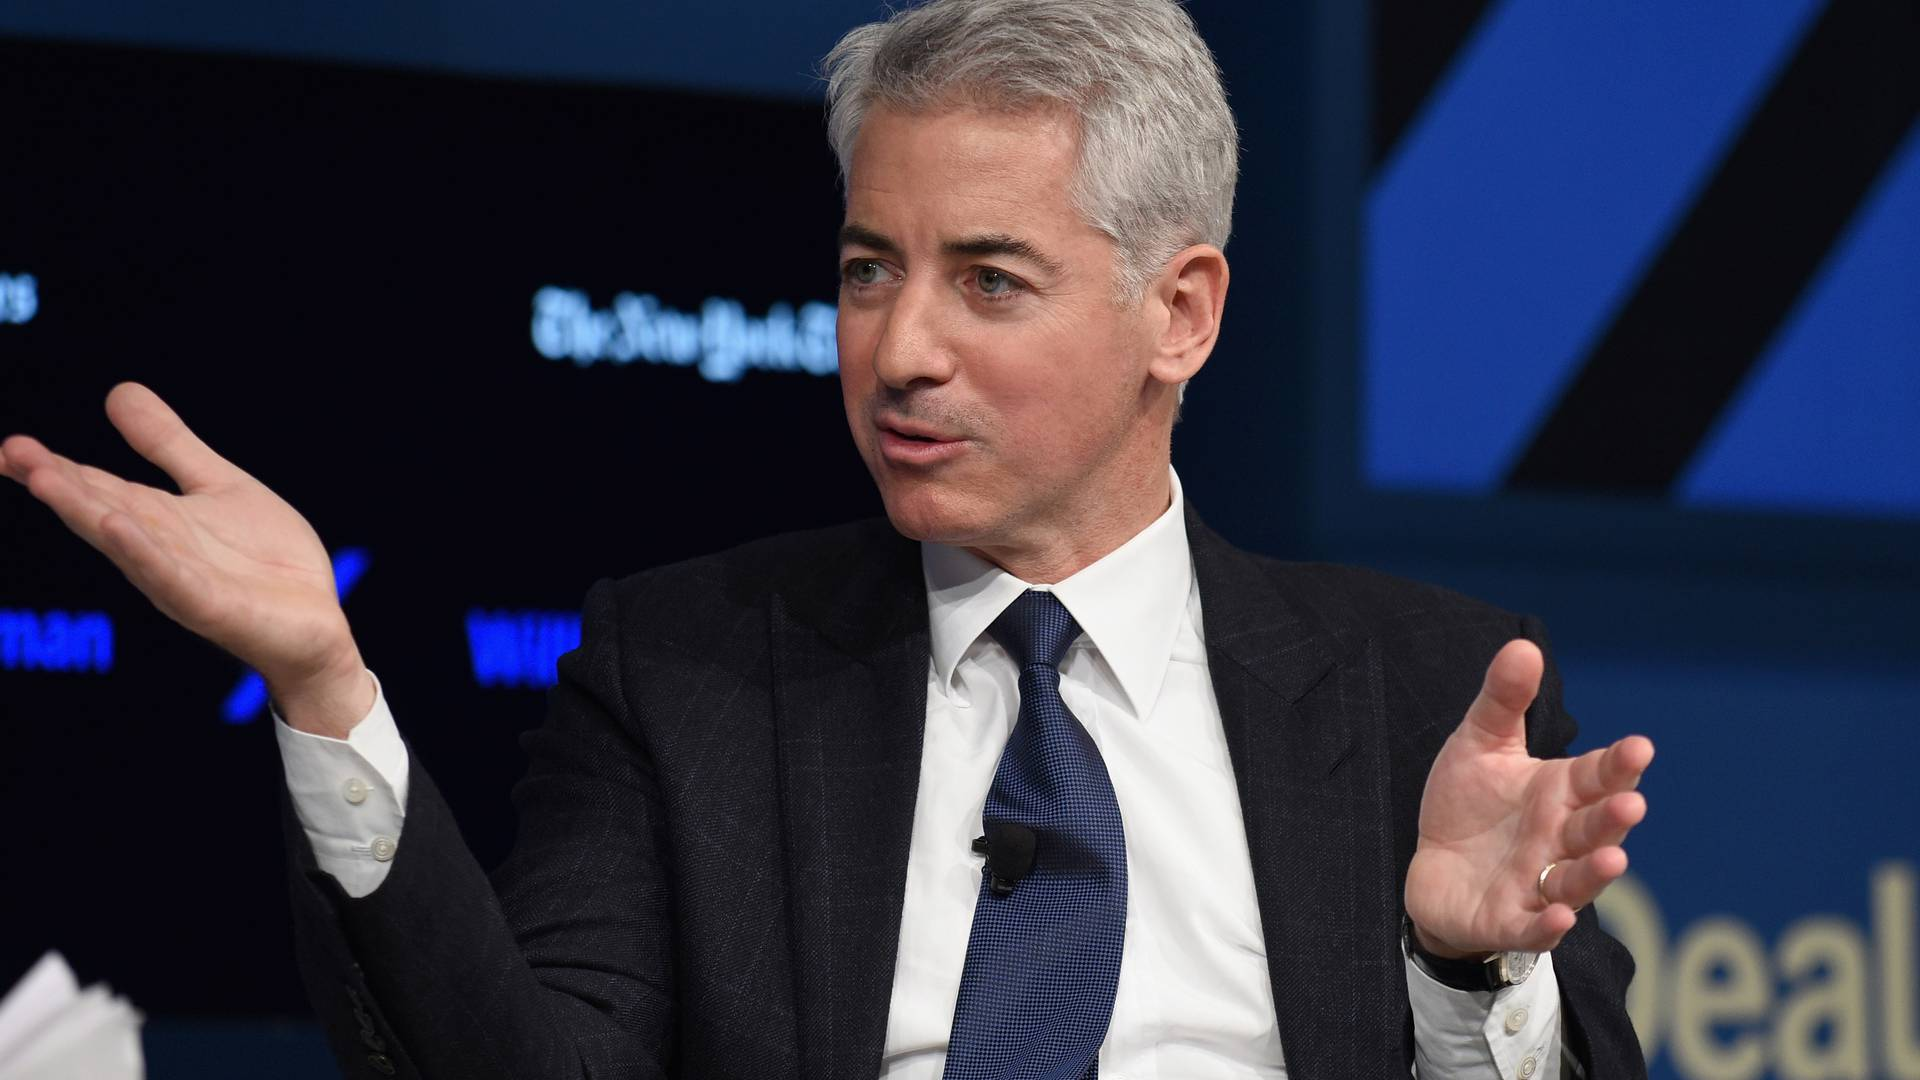 NEW YORK, NY - NOVEMBER 10:  CEO and Portfolio Manager Pershing Square Capital Management L.P. William Ackman speaks at The New York Times DealBook Conference at Jazz at Lincoln Center on November 10, 2016 in New York City.  (Photo by Bryan Bedder/Getty Images for The New York Times )